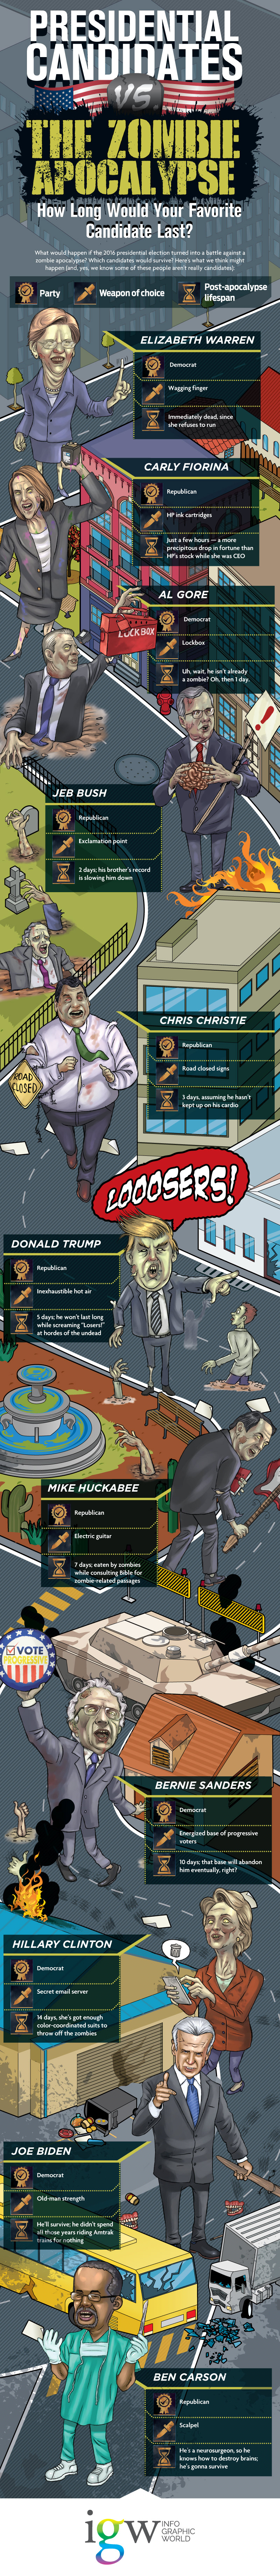 Presidential Candidates Vs. Political Zombies